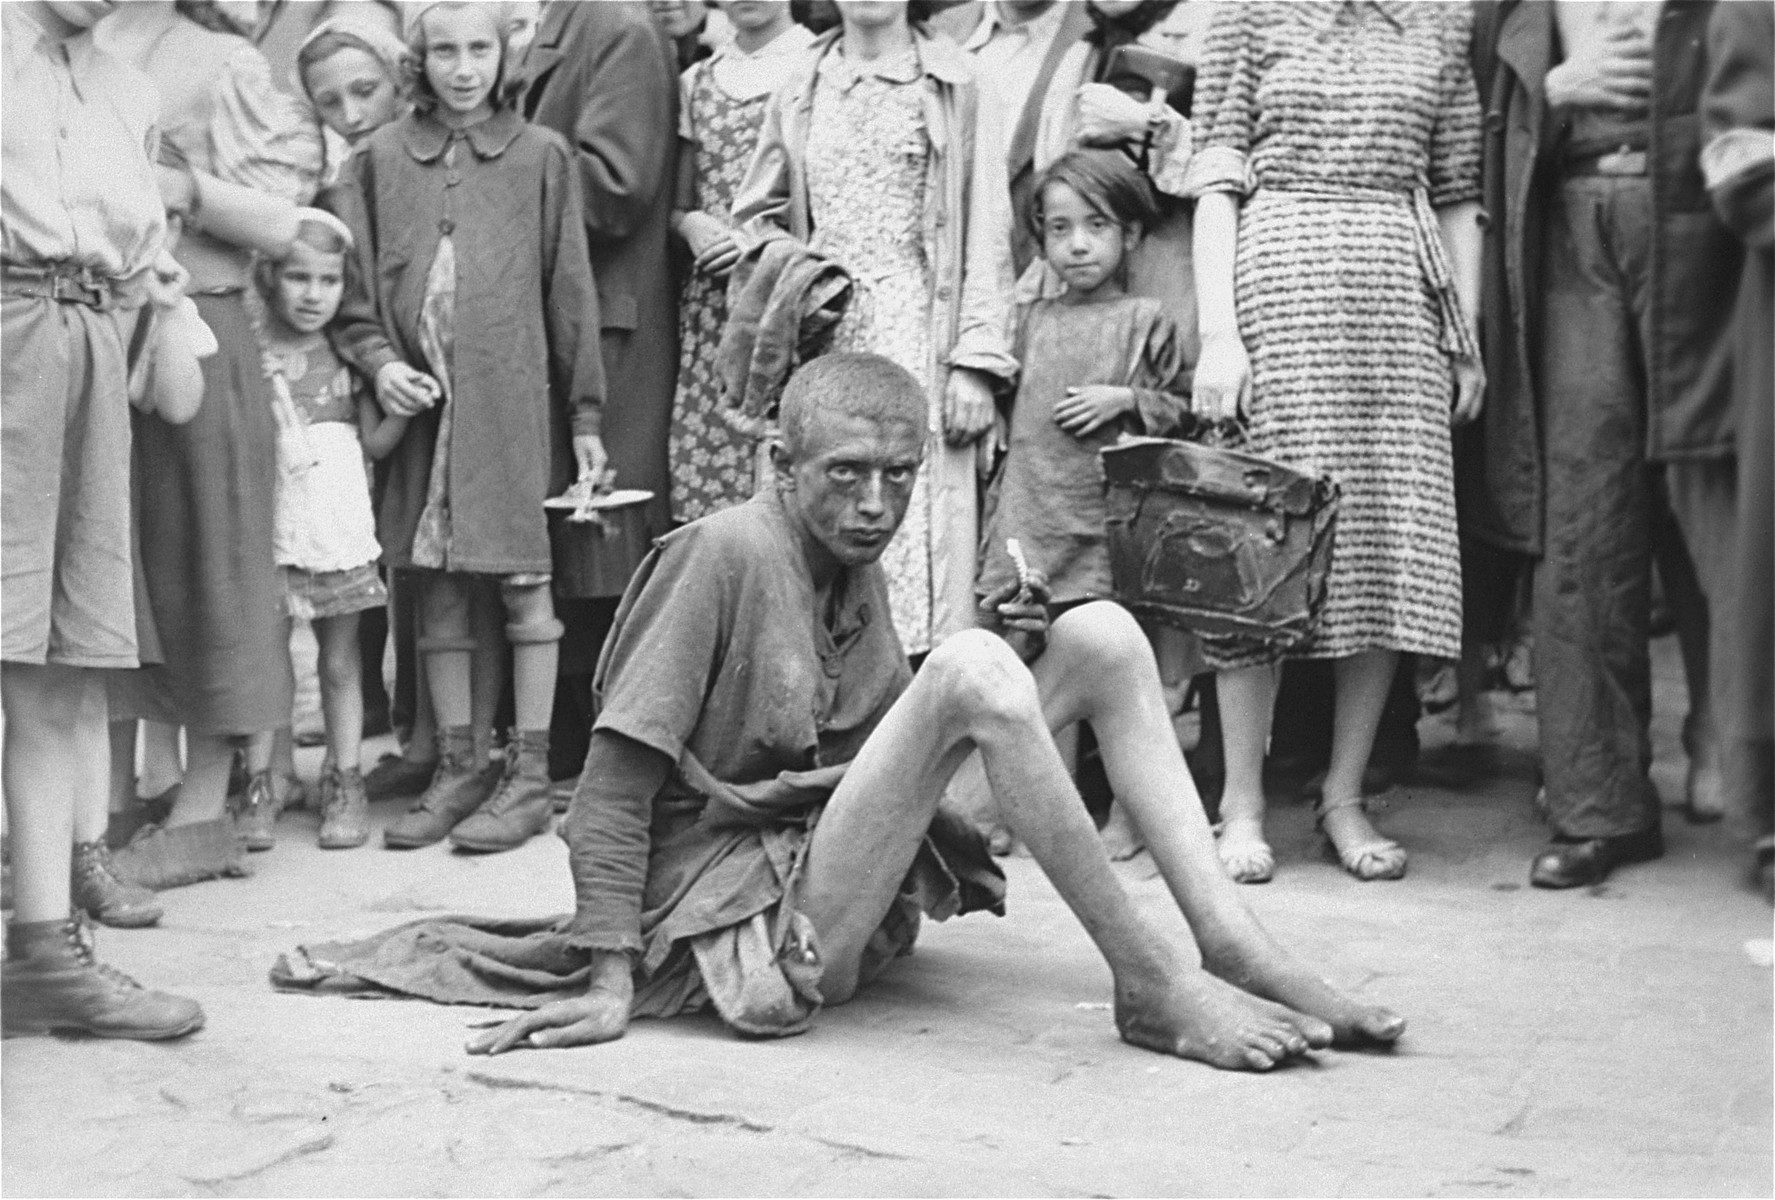 A destitute youth sits on the pavement in the Warsaw ghetto surrounded by other Jews.